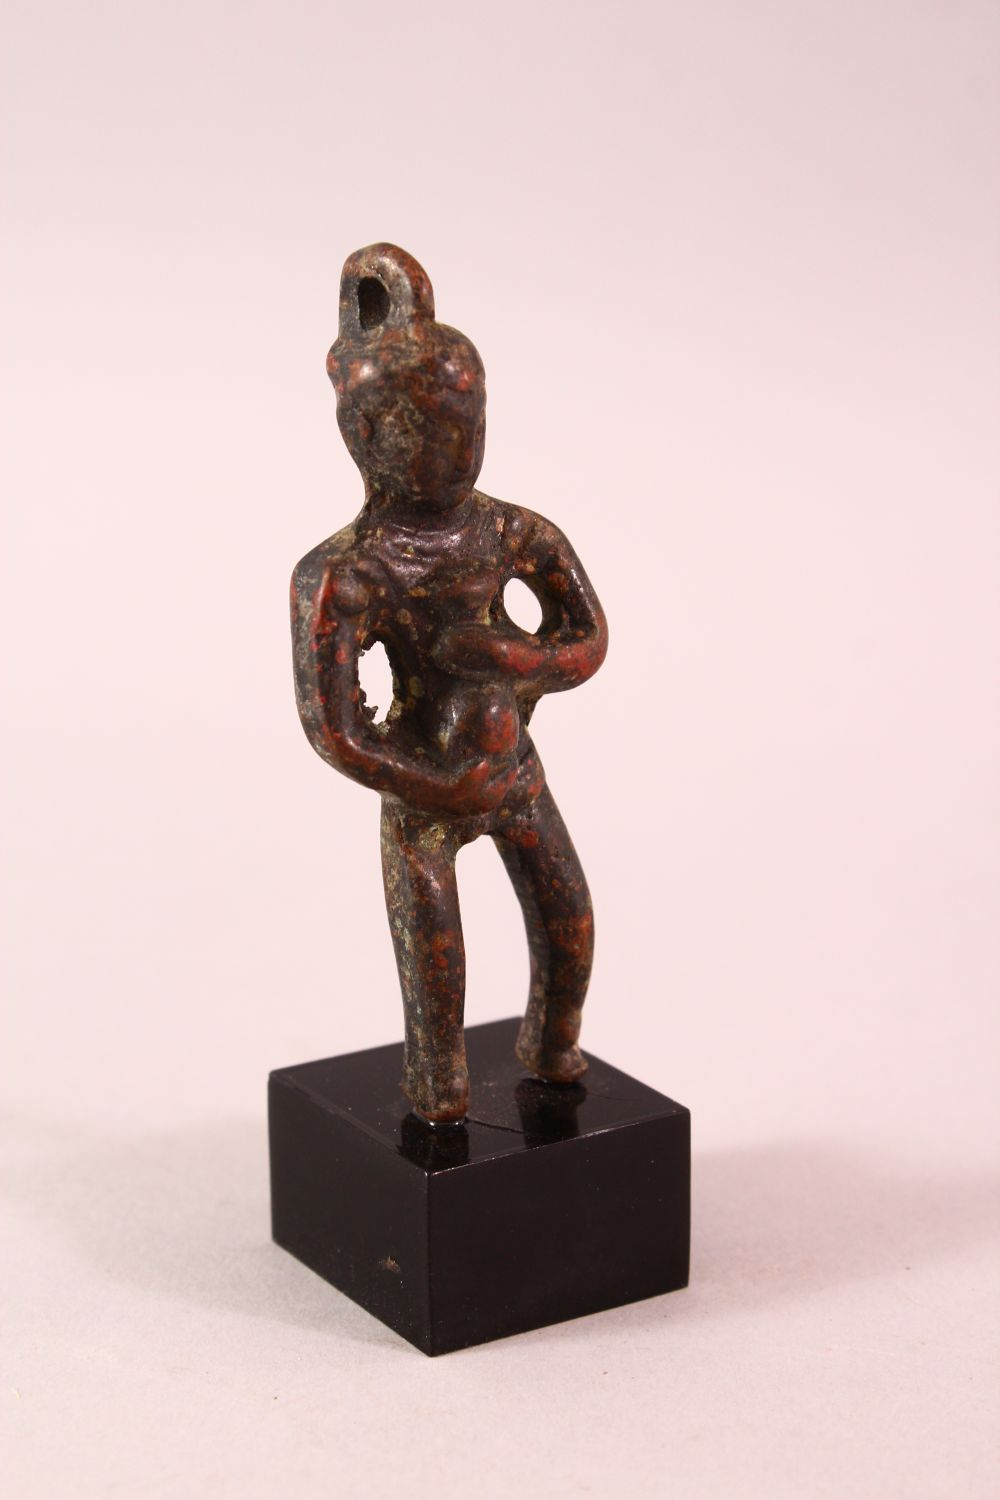 A SMALL EARLY CHINESE BRONZE FIGURE OF BUDDHA HOLDING A BOTTLE, poss neolithic, mounted to a base, - Image 2 of 5